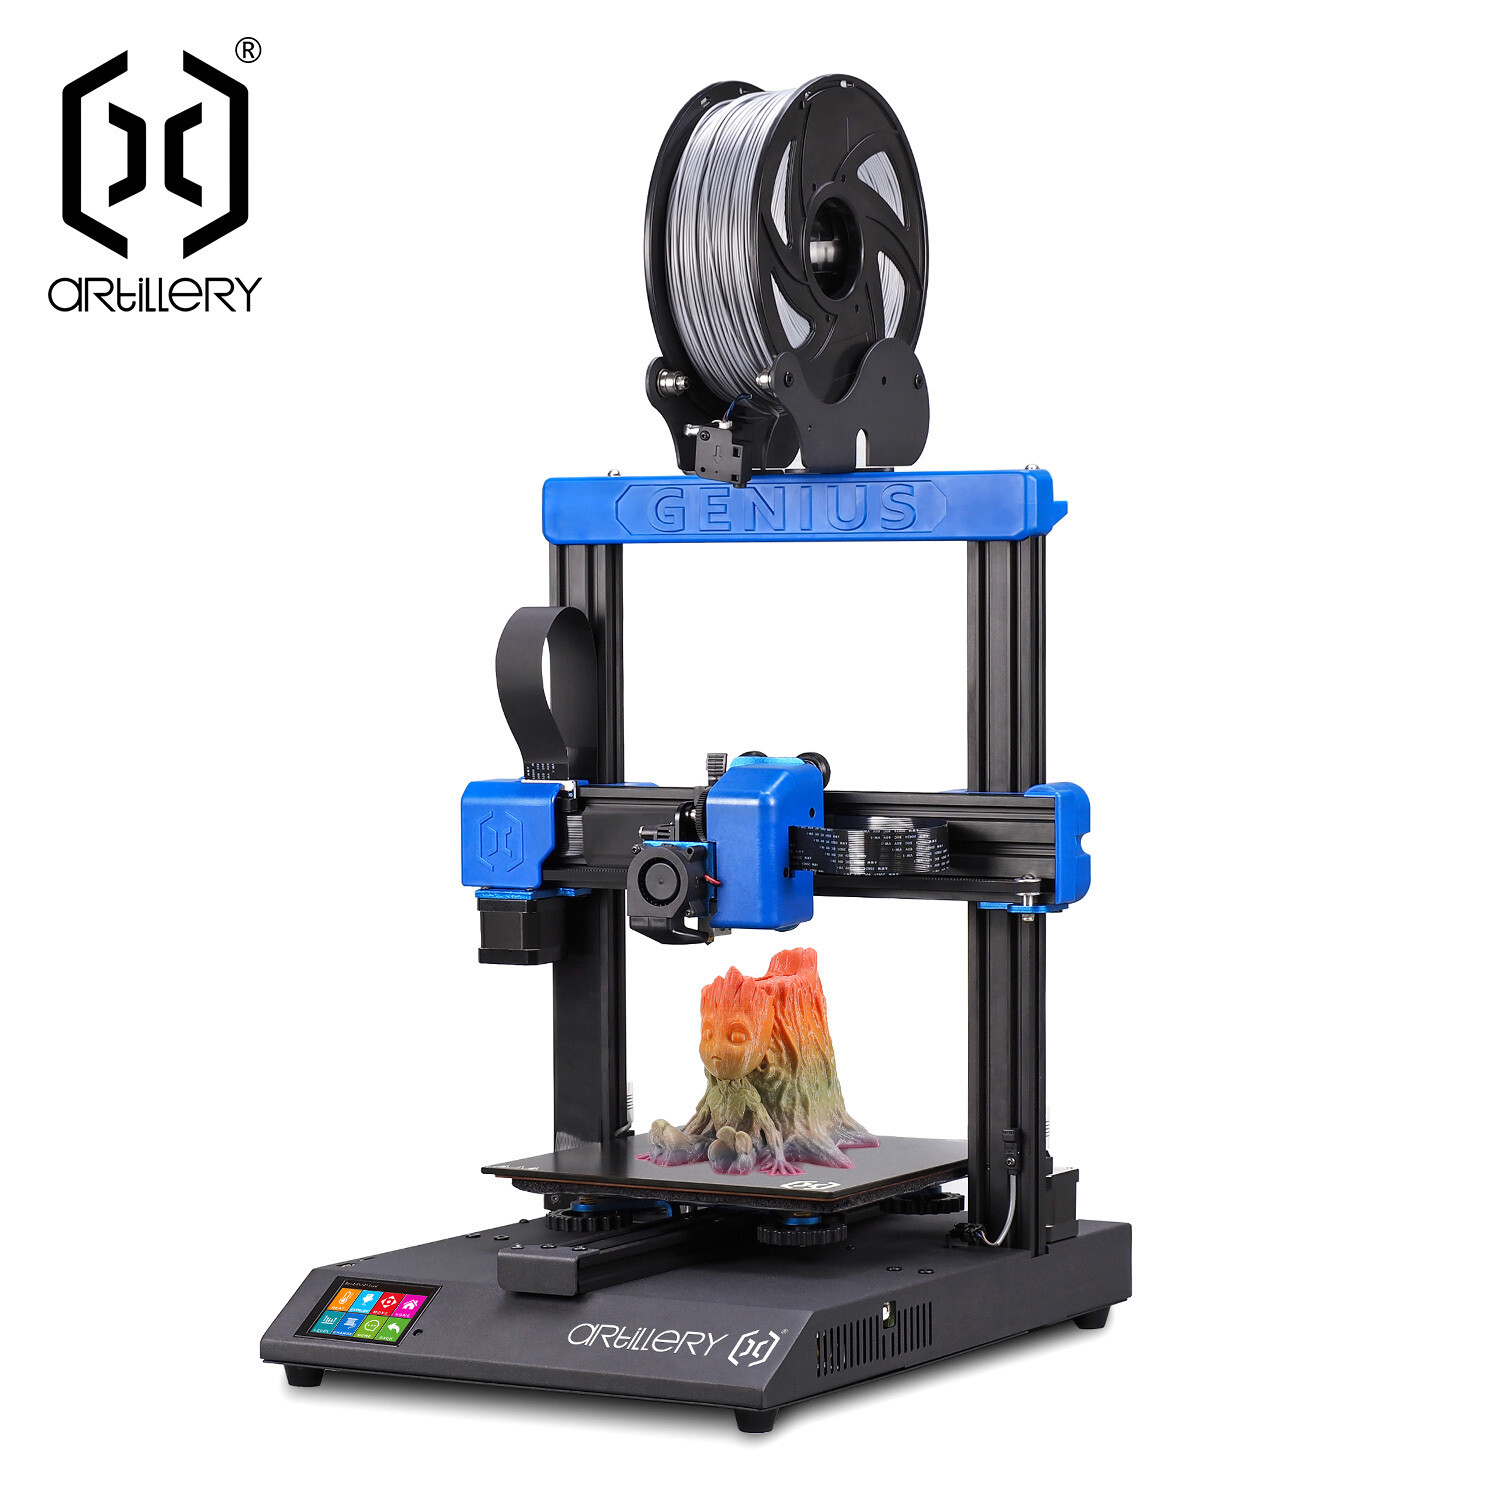 """Artillery 3D - Genius """"New model for 2020. Fully featured like it's brother Sidewinder X1 but in a smaller footprint. Excellent bang for your buck"""""""